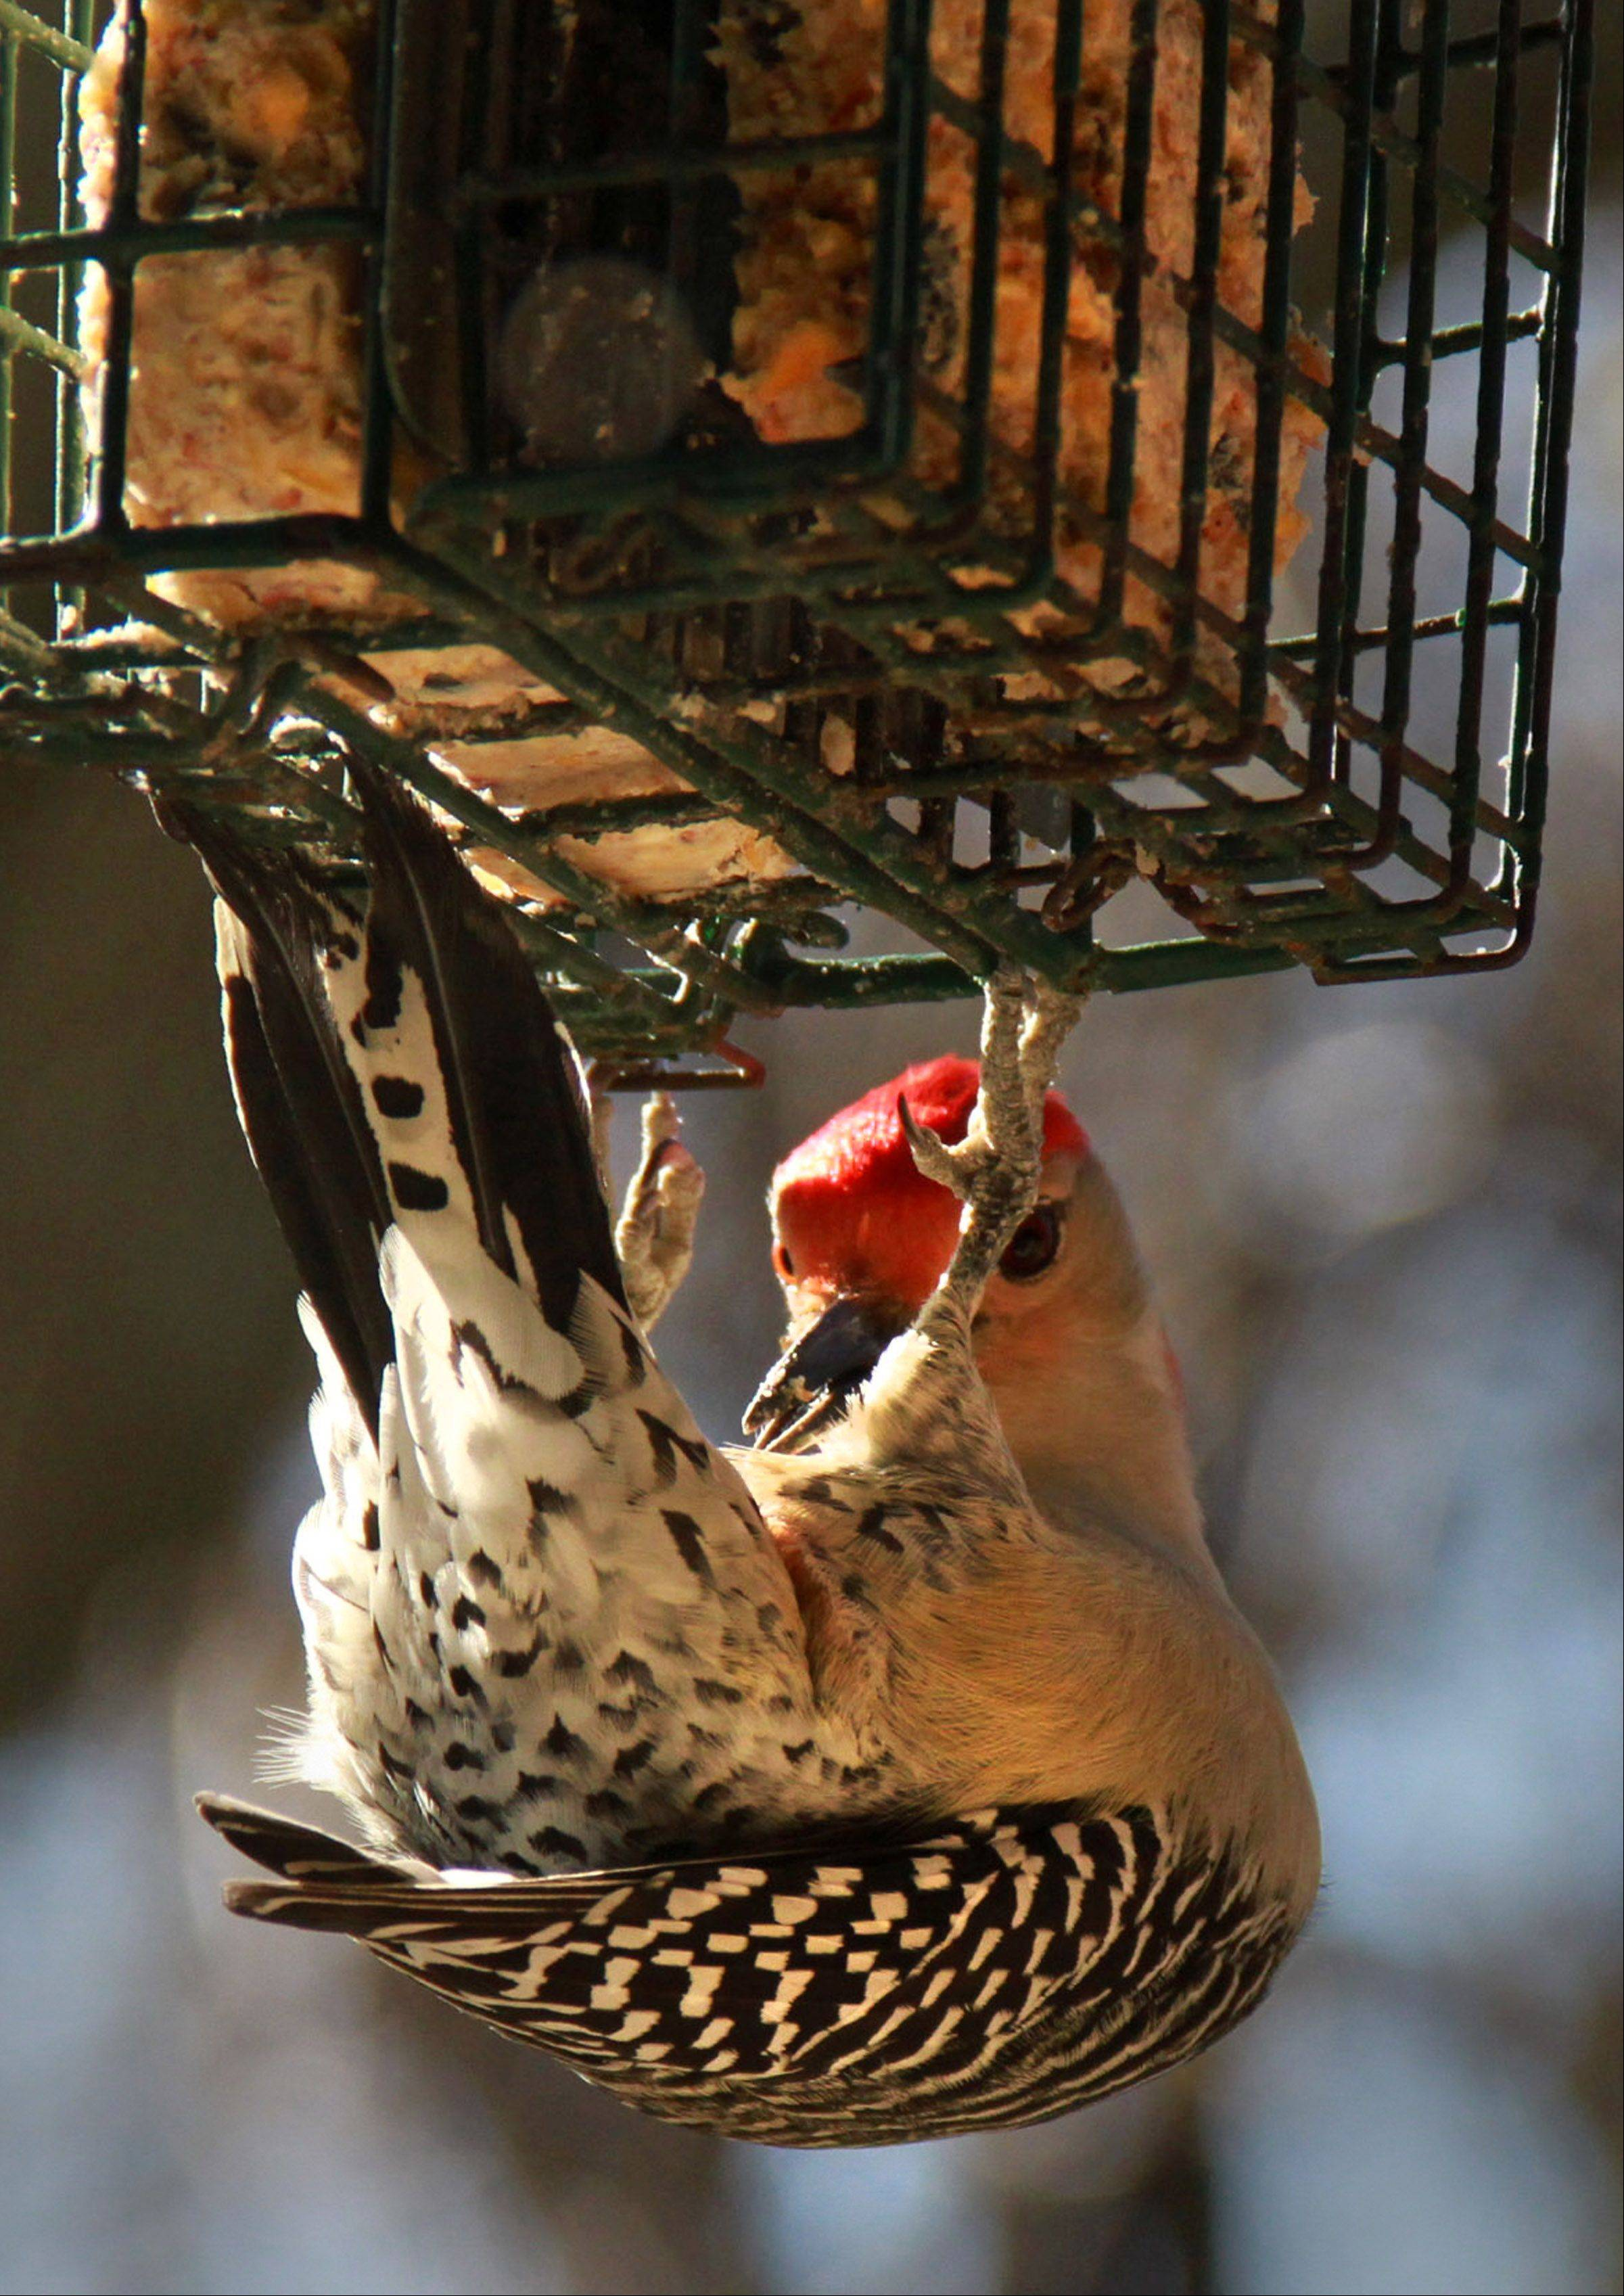 A nine-inch long male red-bellied woodpecker hangs upside down from a suet feeder and seems to be using his belly as a plate Nov. 2 in Glenview. You should select suet for your feeder based on what type of birds you want to attract.